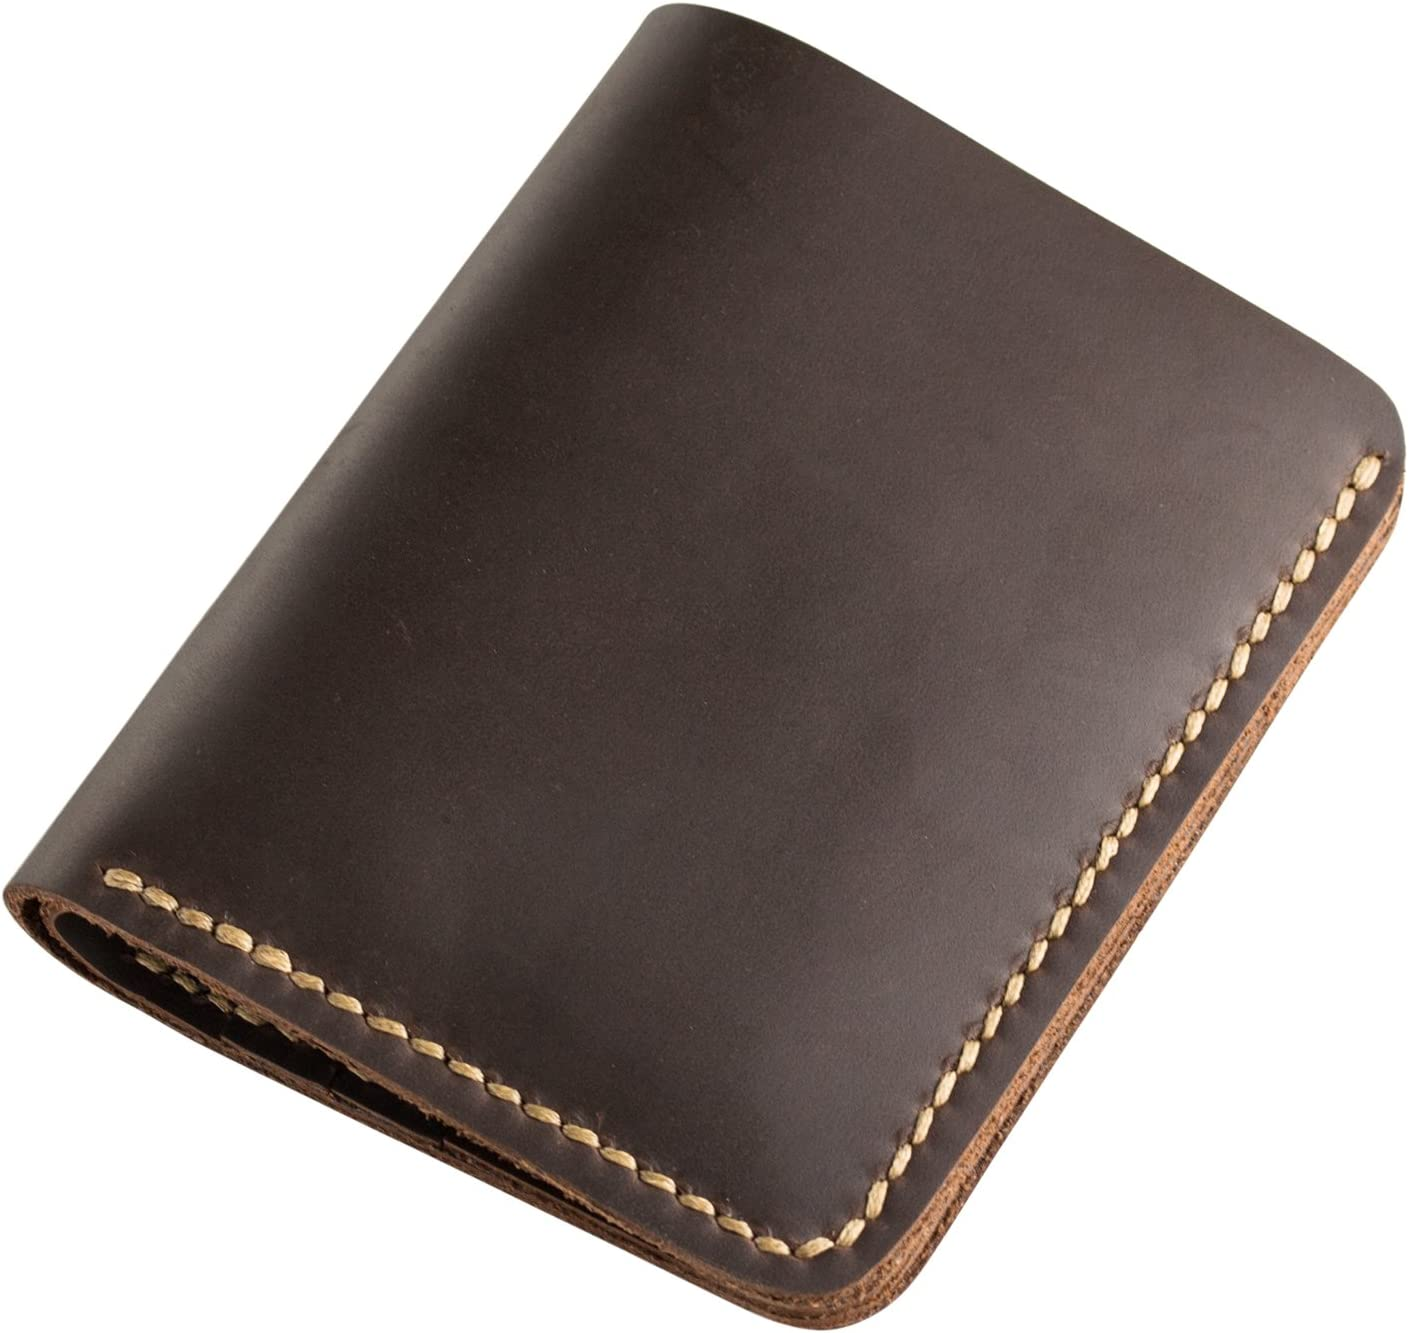 Ancicraft Wallets For Men Leather Bifold Handmade Vintage Dark Brown Stitch by Hand Gift for Him